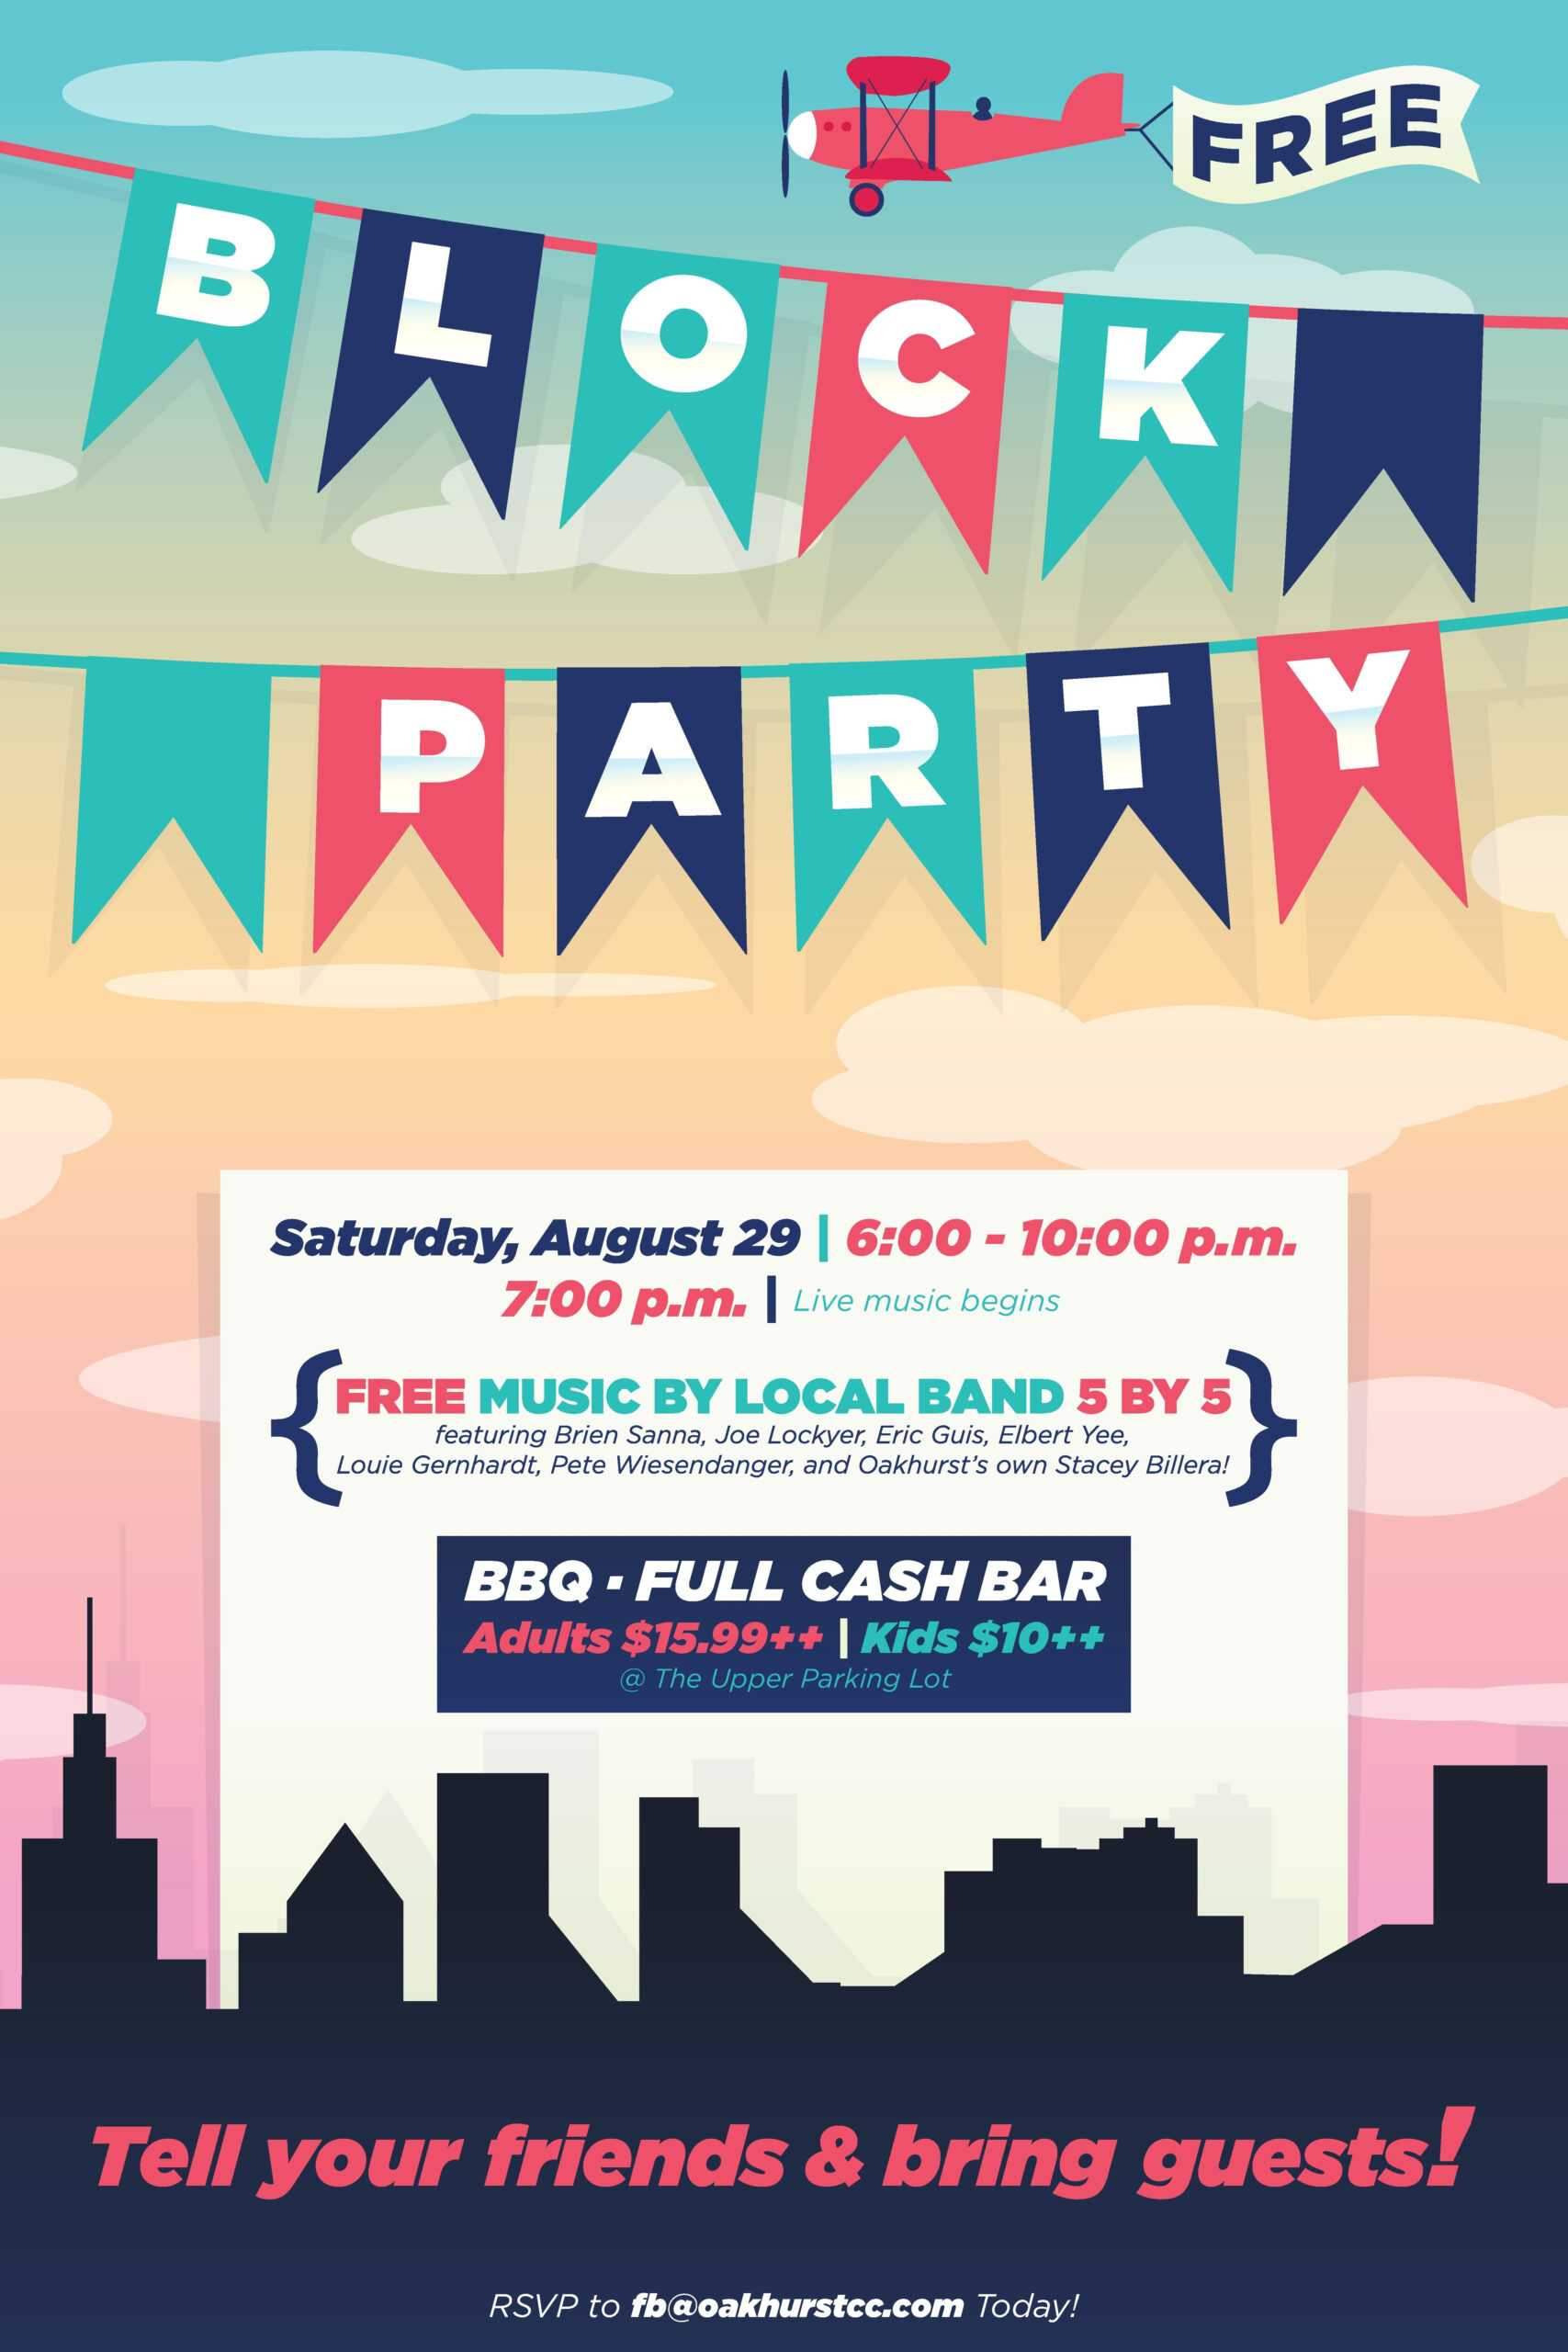 003 Free Block Party Flyer Template Word Fantastic Ideas With Regard To Free Block Party Flyer Template